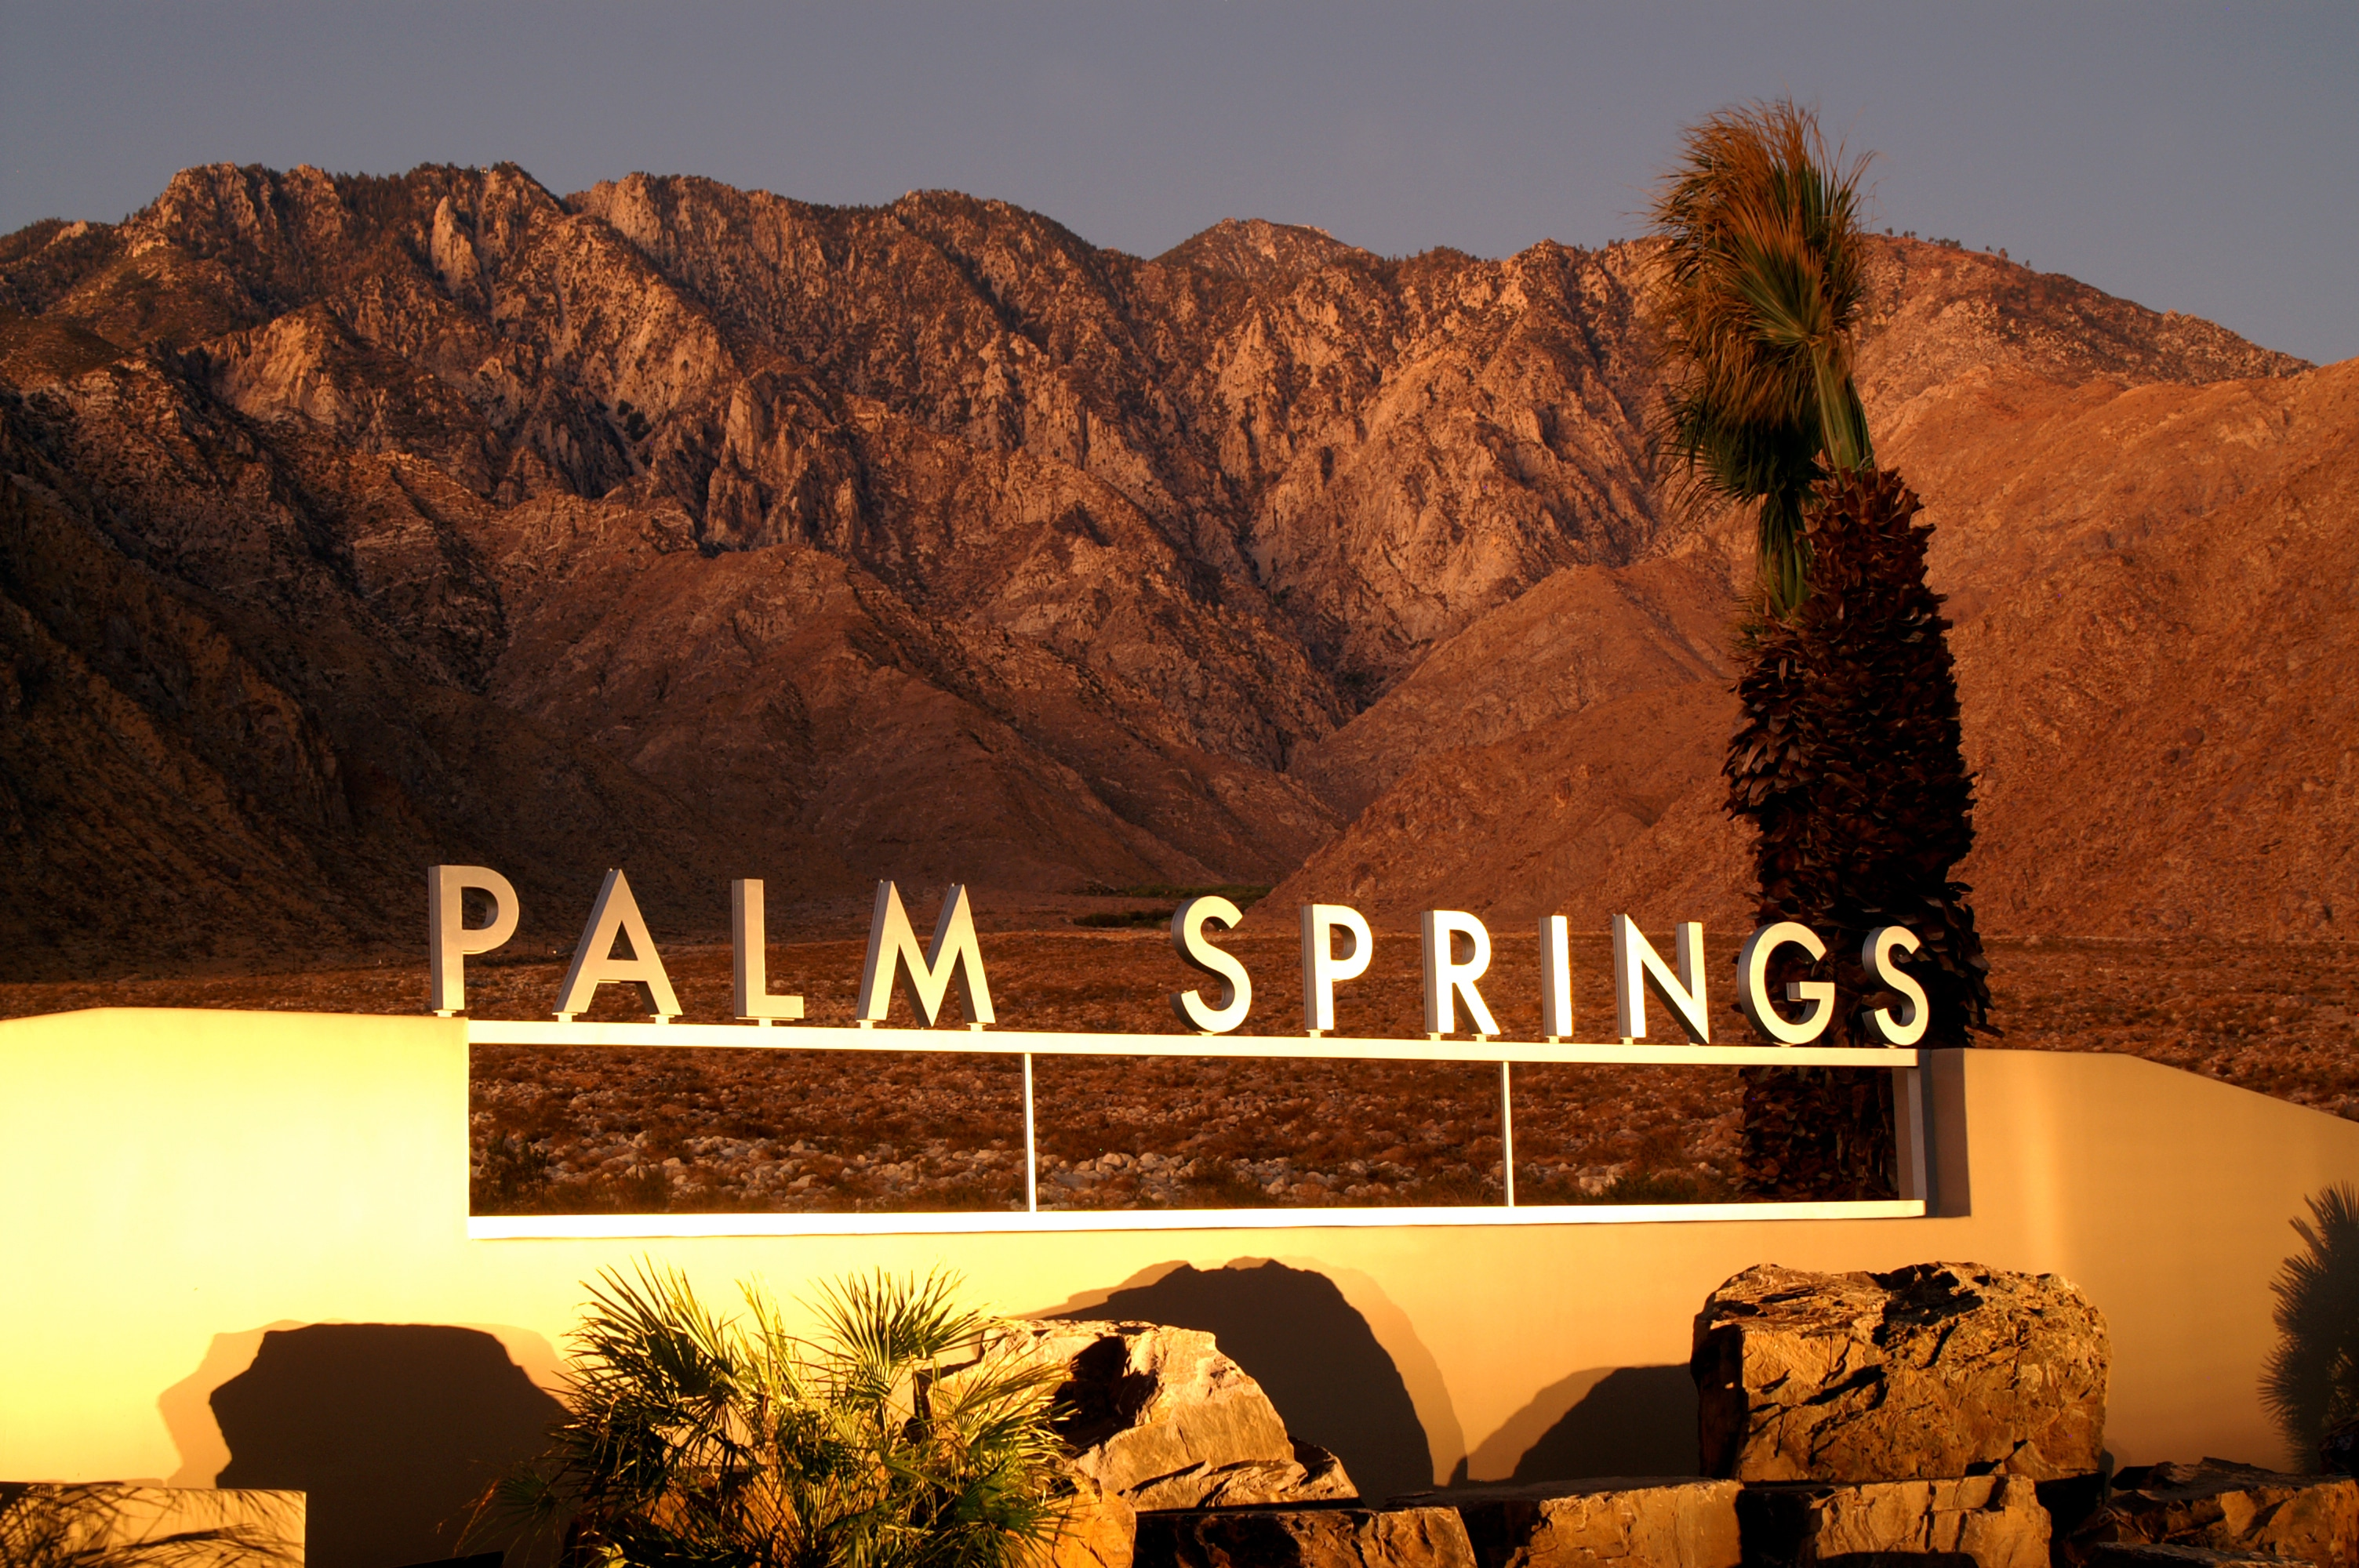 Palm Springs State of the City 2019